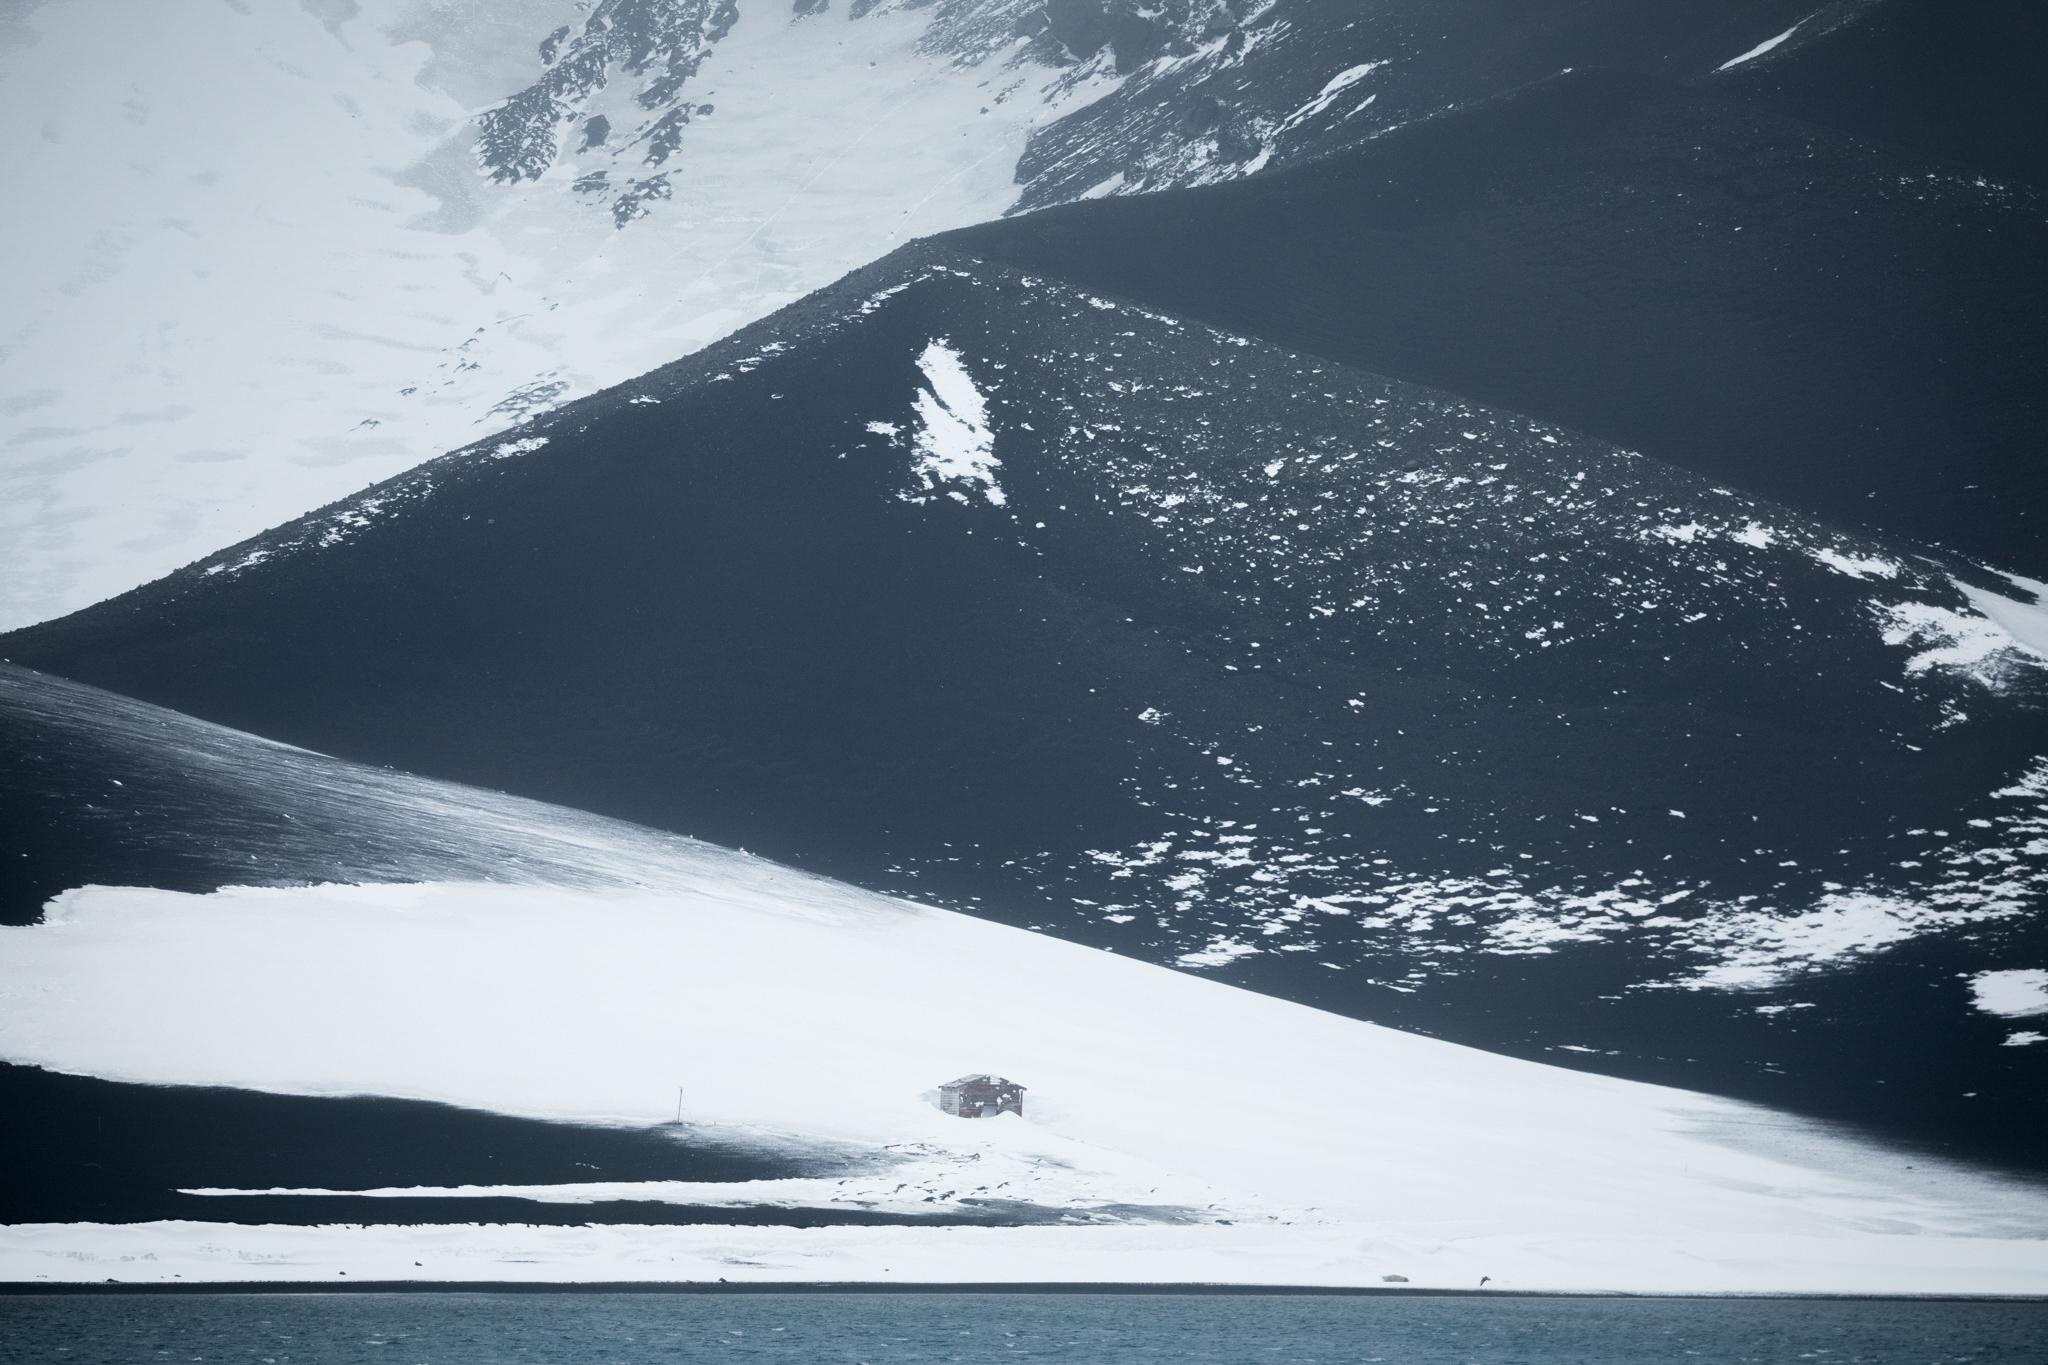 A derelict hut stands alone on a dramatic slope of snow and ash, deep inside the Deception Island caldera. It lies about 1 km south of Pendulum Cove, where the remains of the Chilean Presidente Pedro Aguirre Cerda Station (destroyed by volcanic activity in the late 1960s) are located.